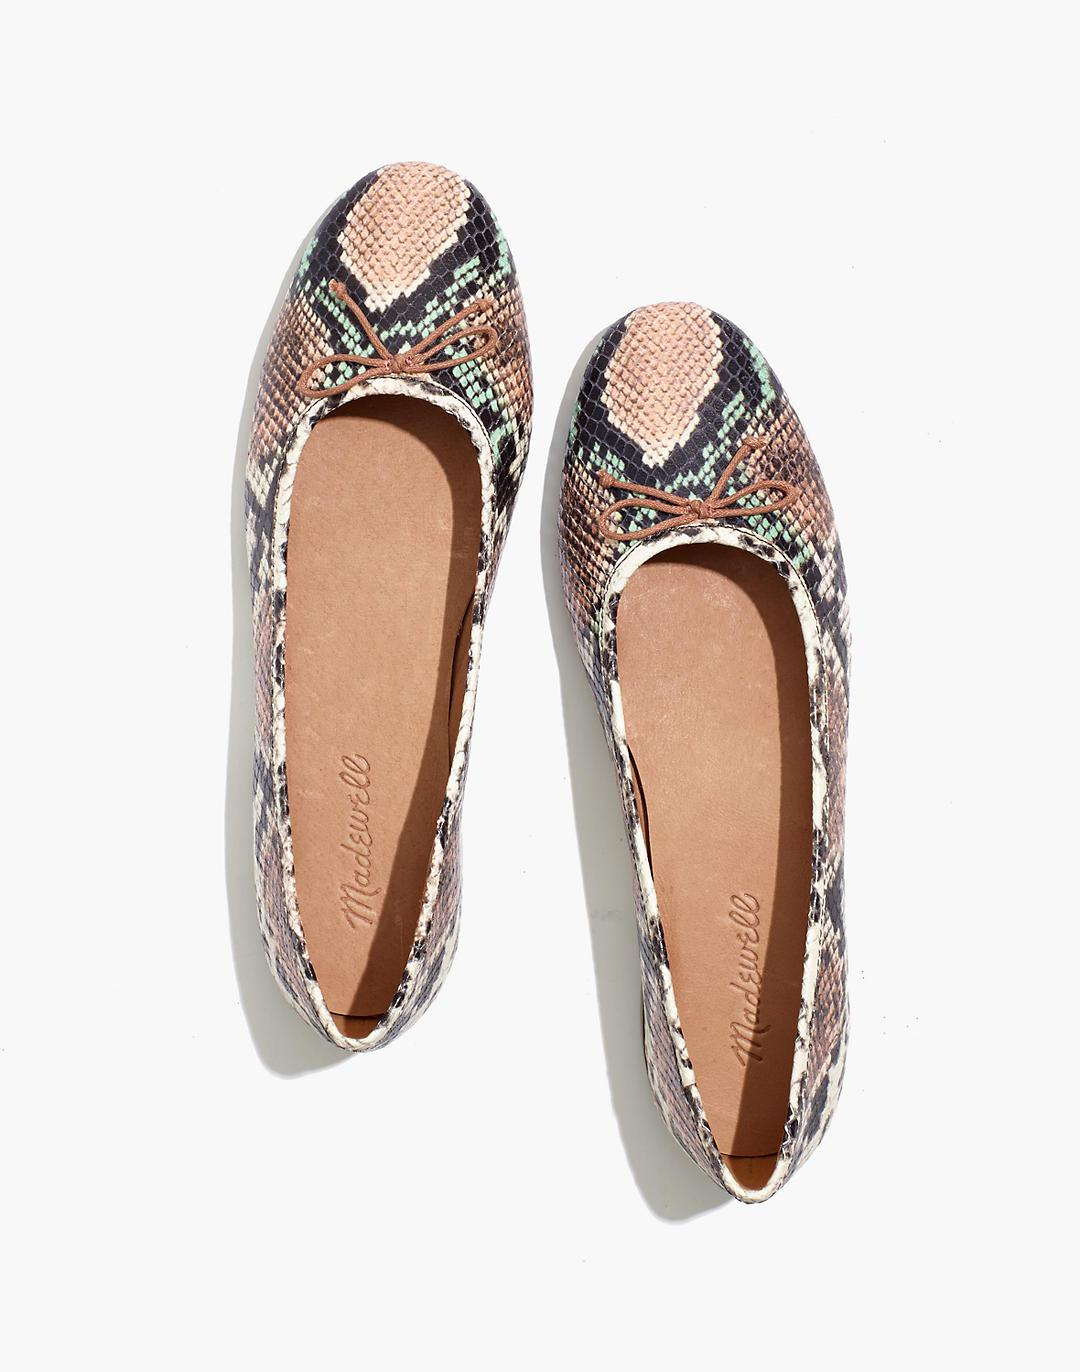 The Adelle Ballet Flat in Snake Embossed Leather